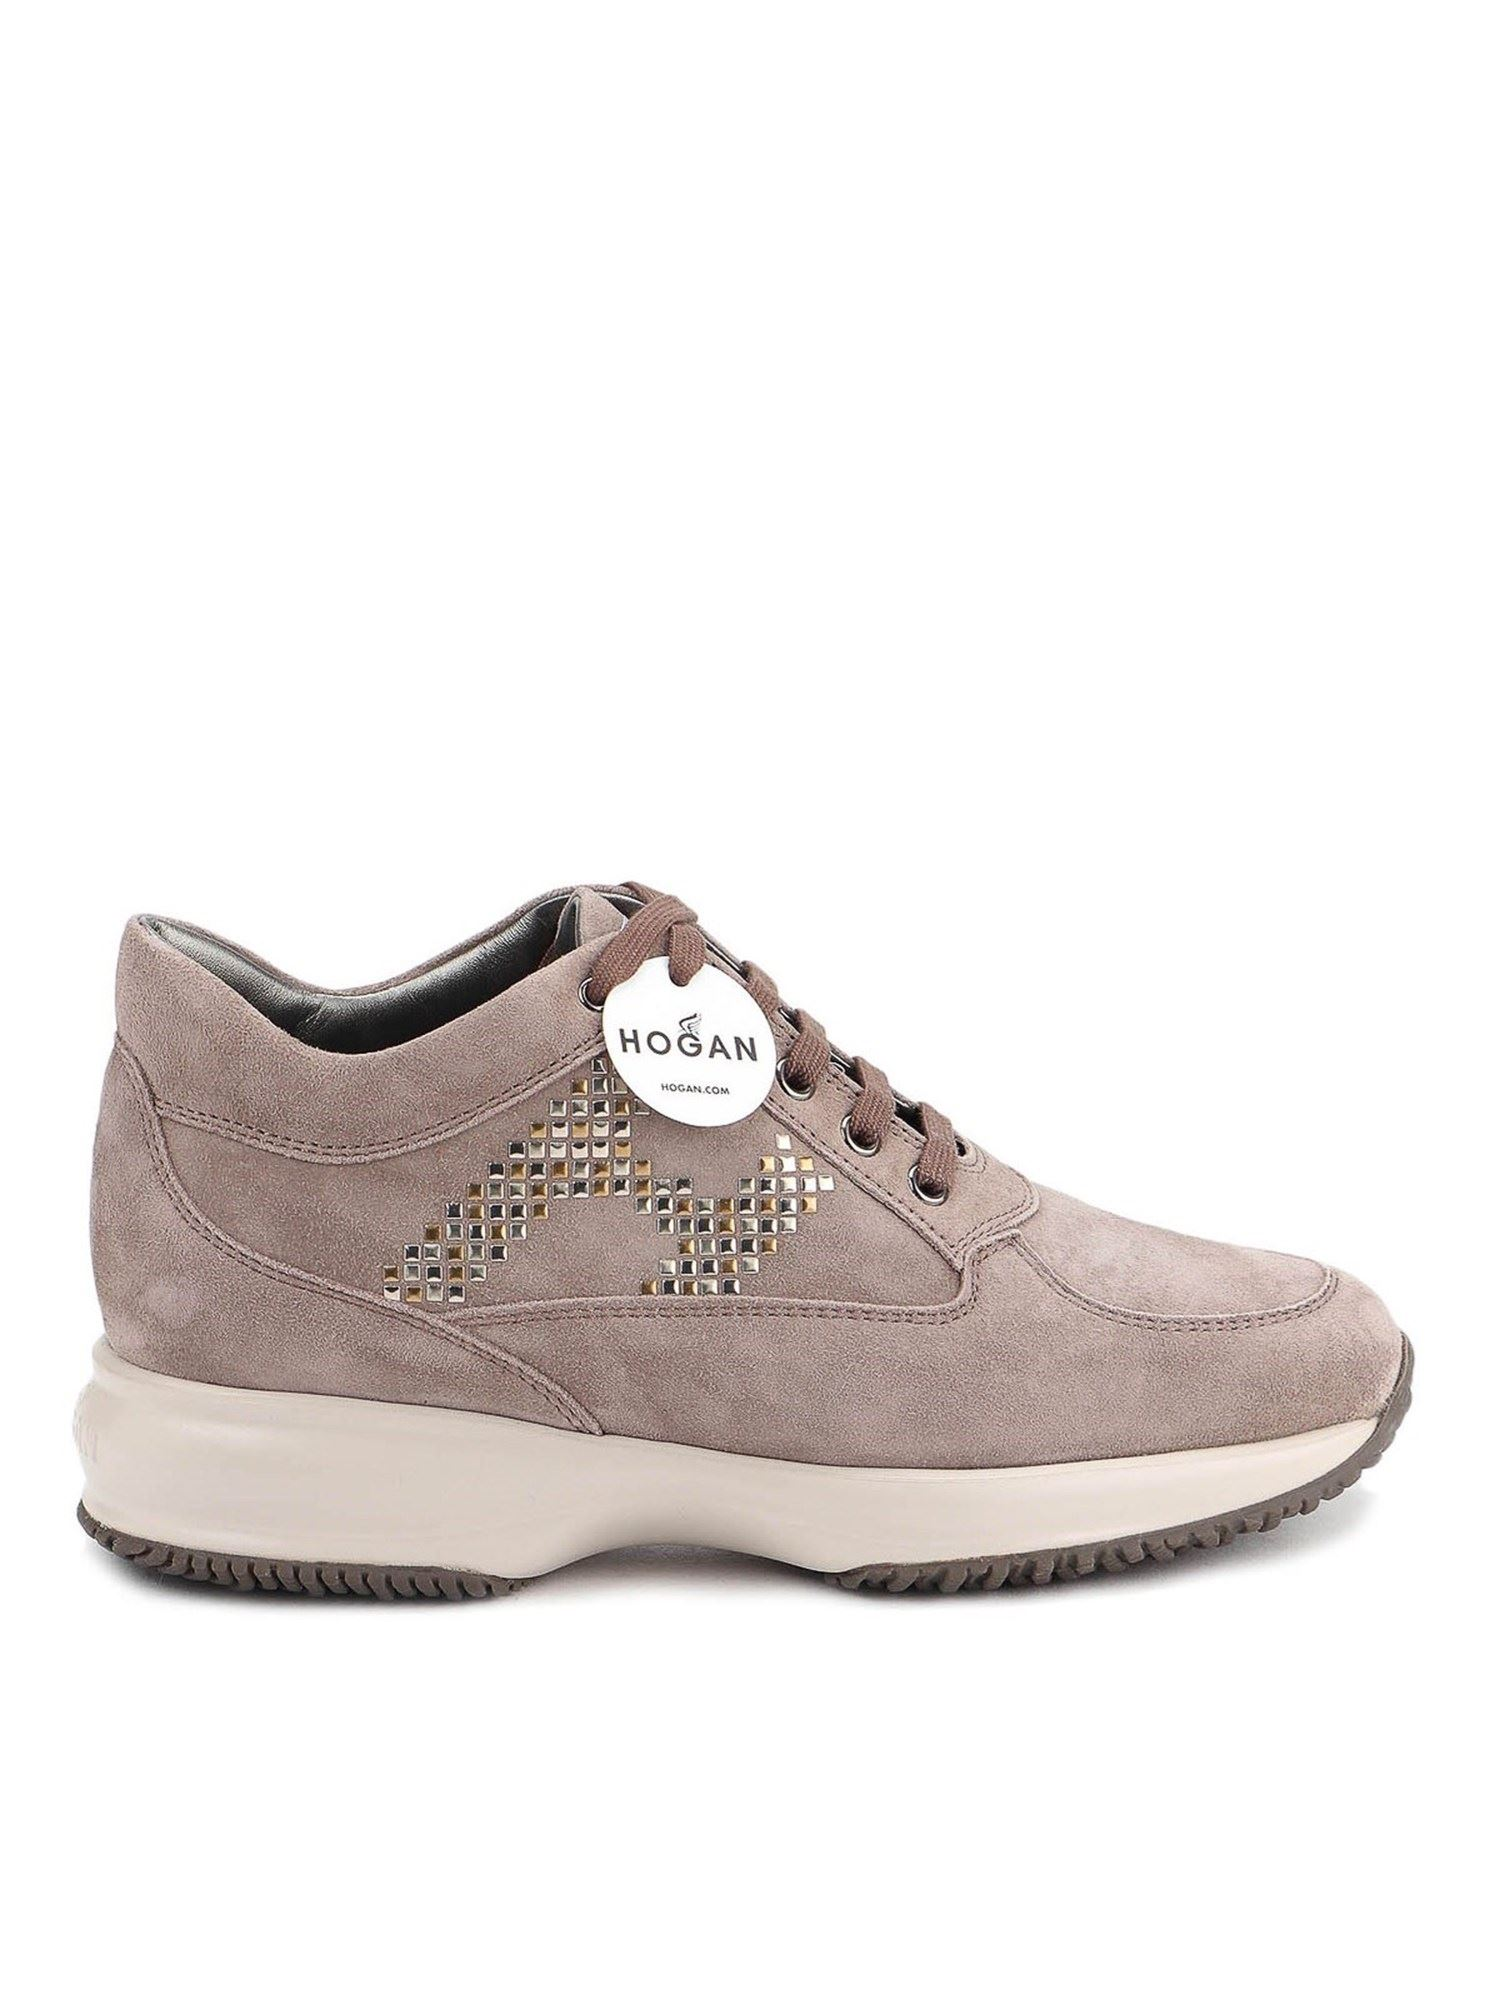 Hogan INTERACTIVE STUDDED SUEDE SNEAKERS